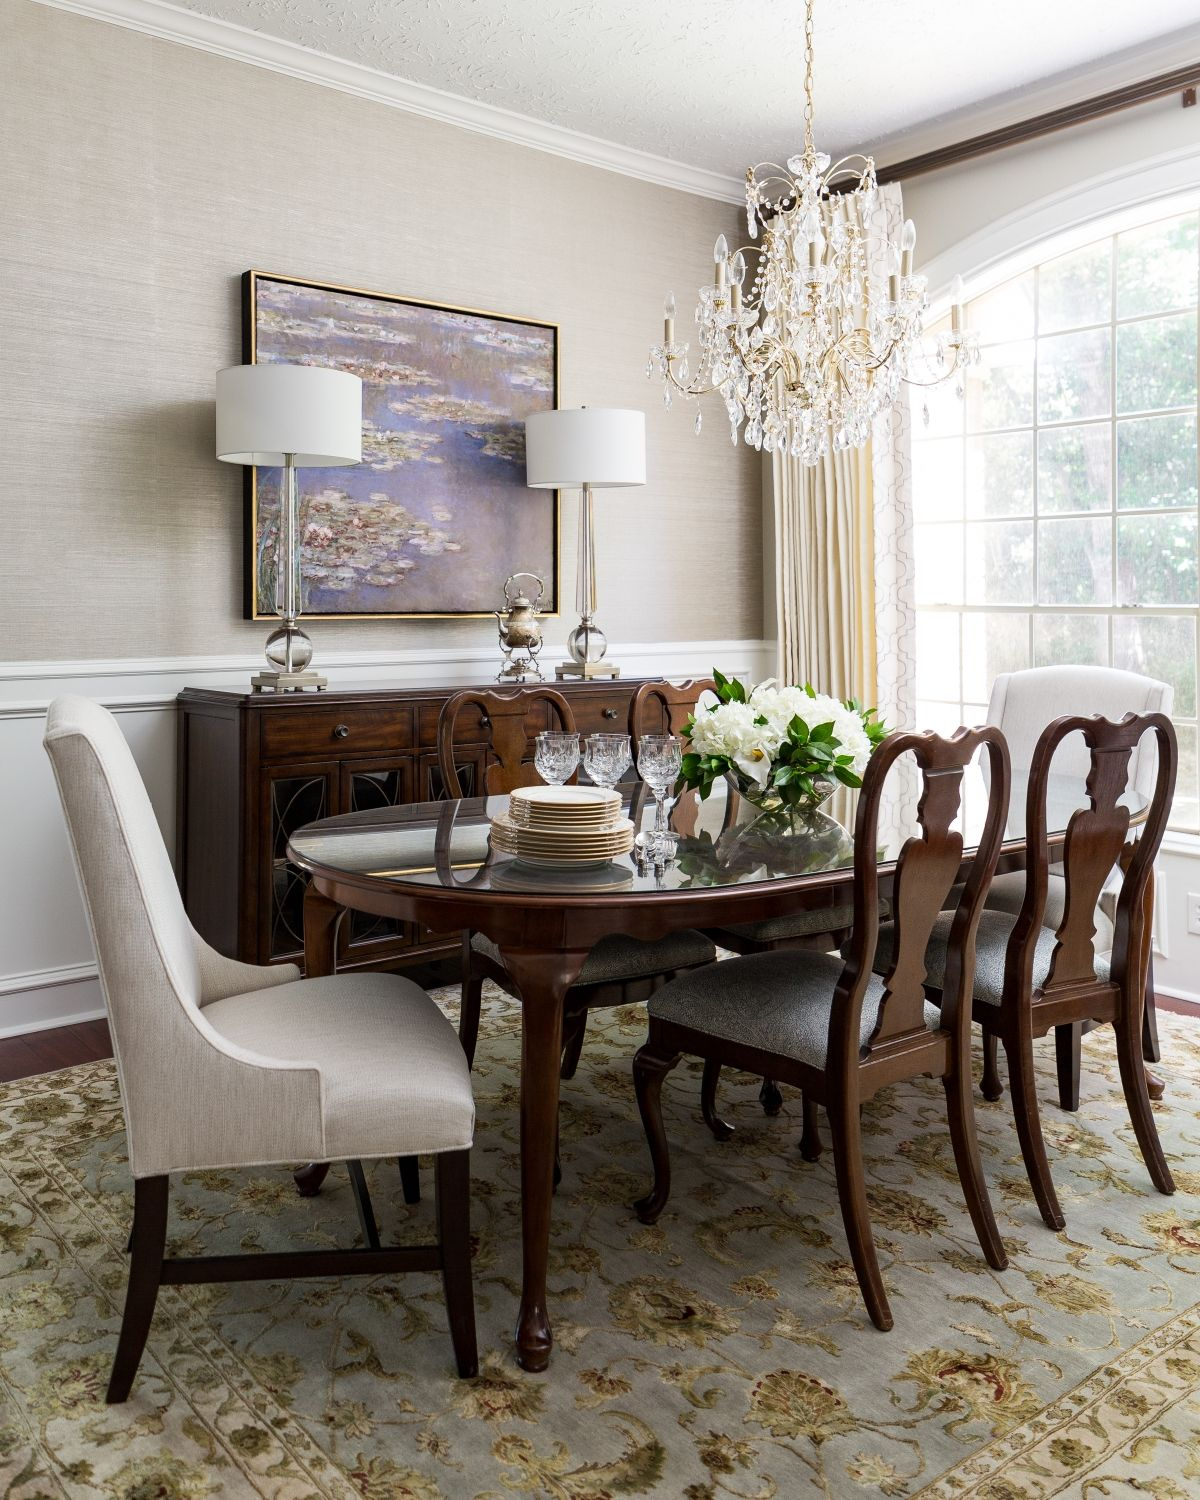 19 Magnificent Design Ideas Of Classy Traditional Dining Rooms Luxury Dining Room Elegant Dining Room Luxury Dining